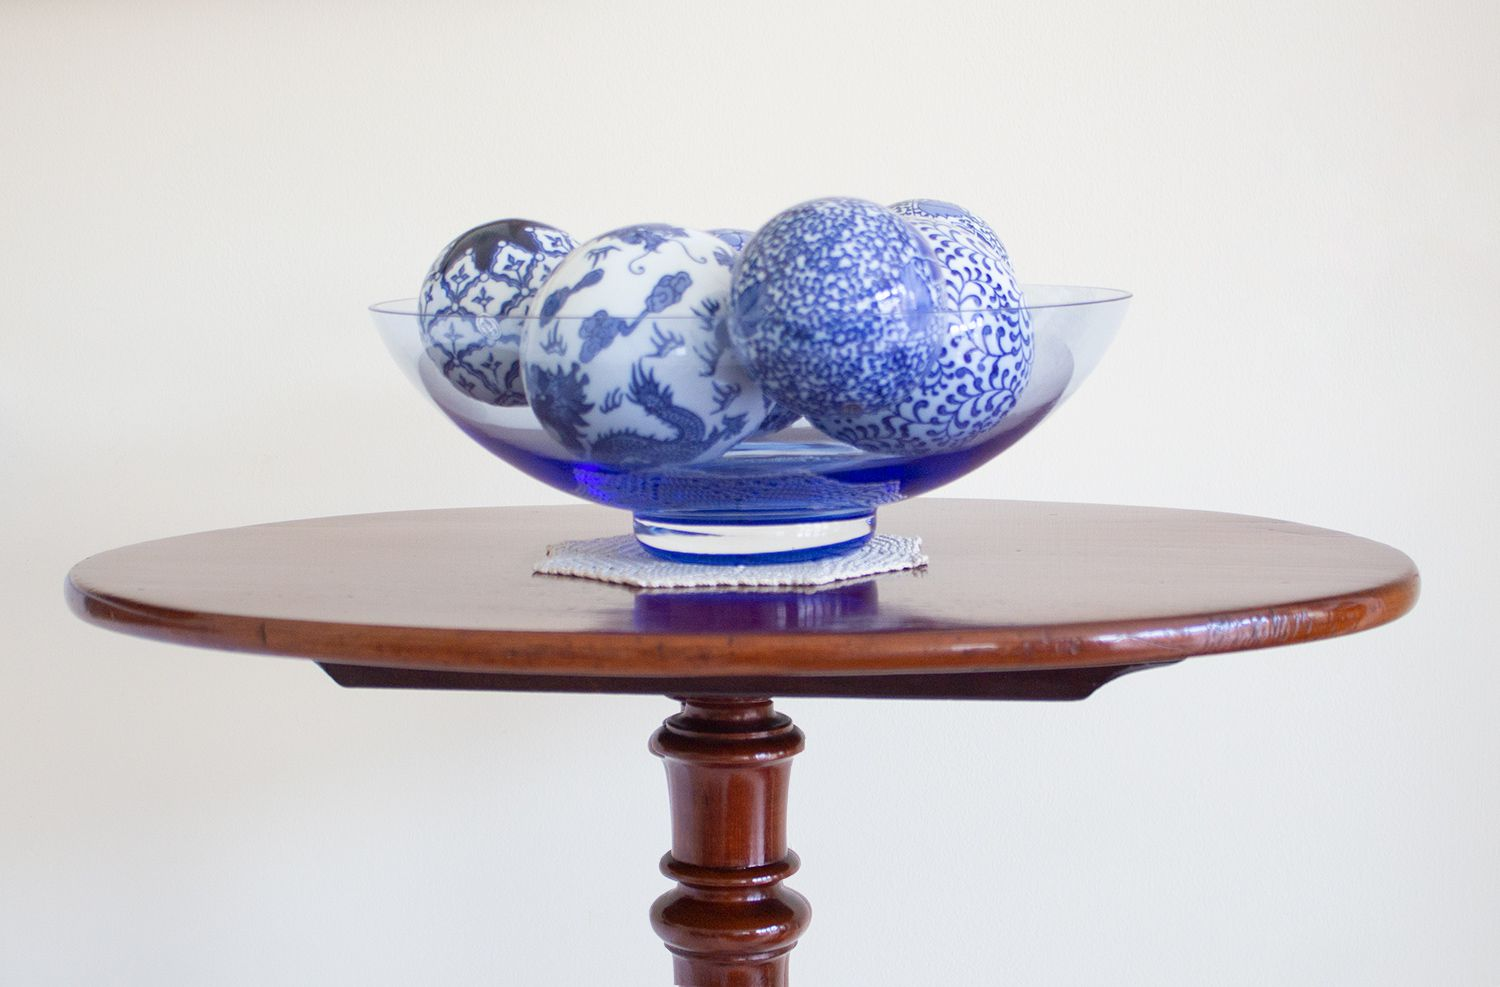 A close up of a blue glass bowl on an an antique table.